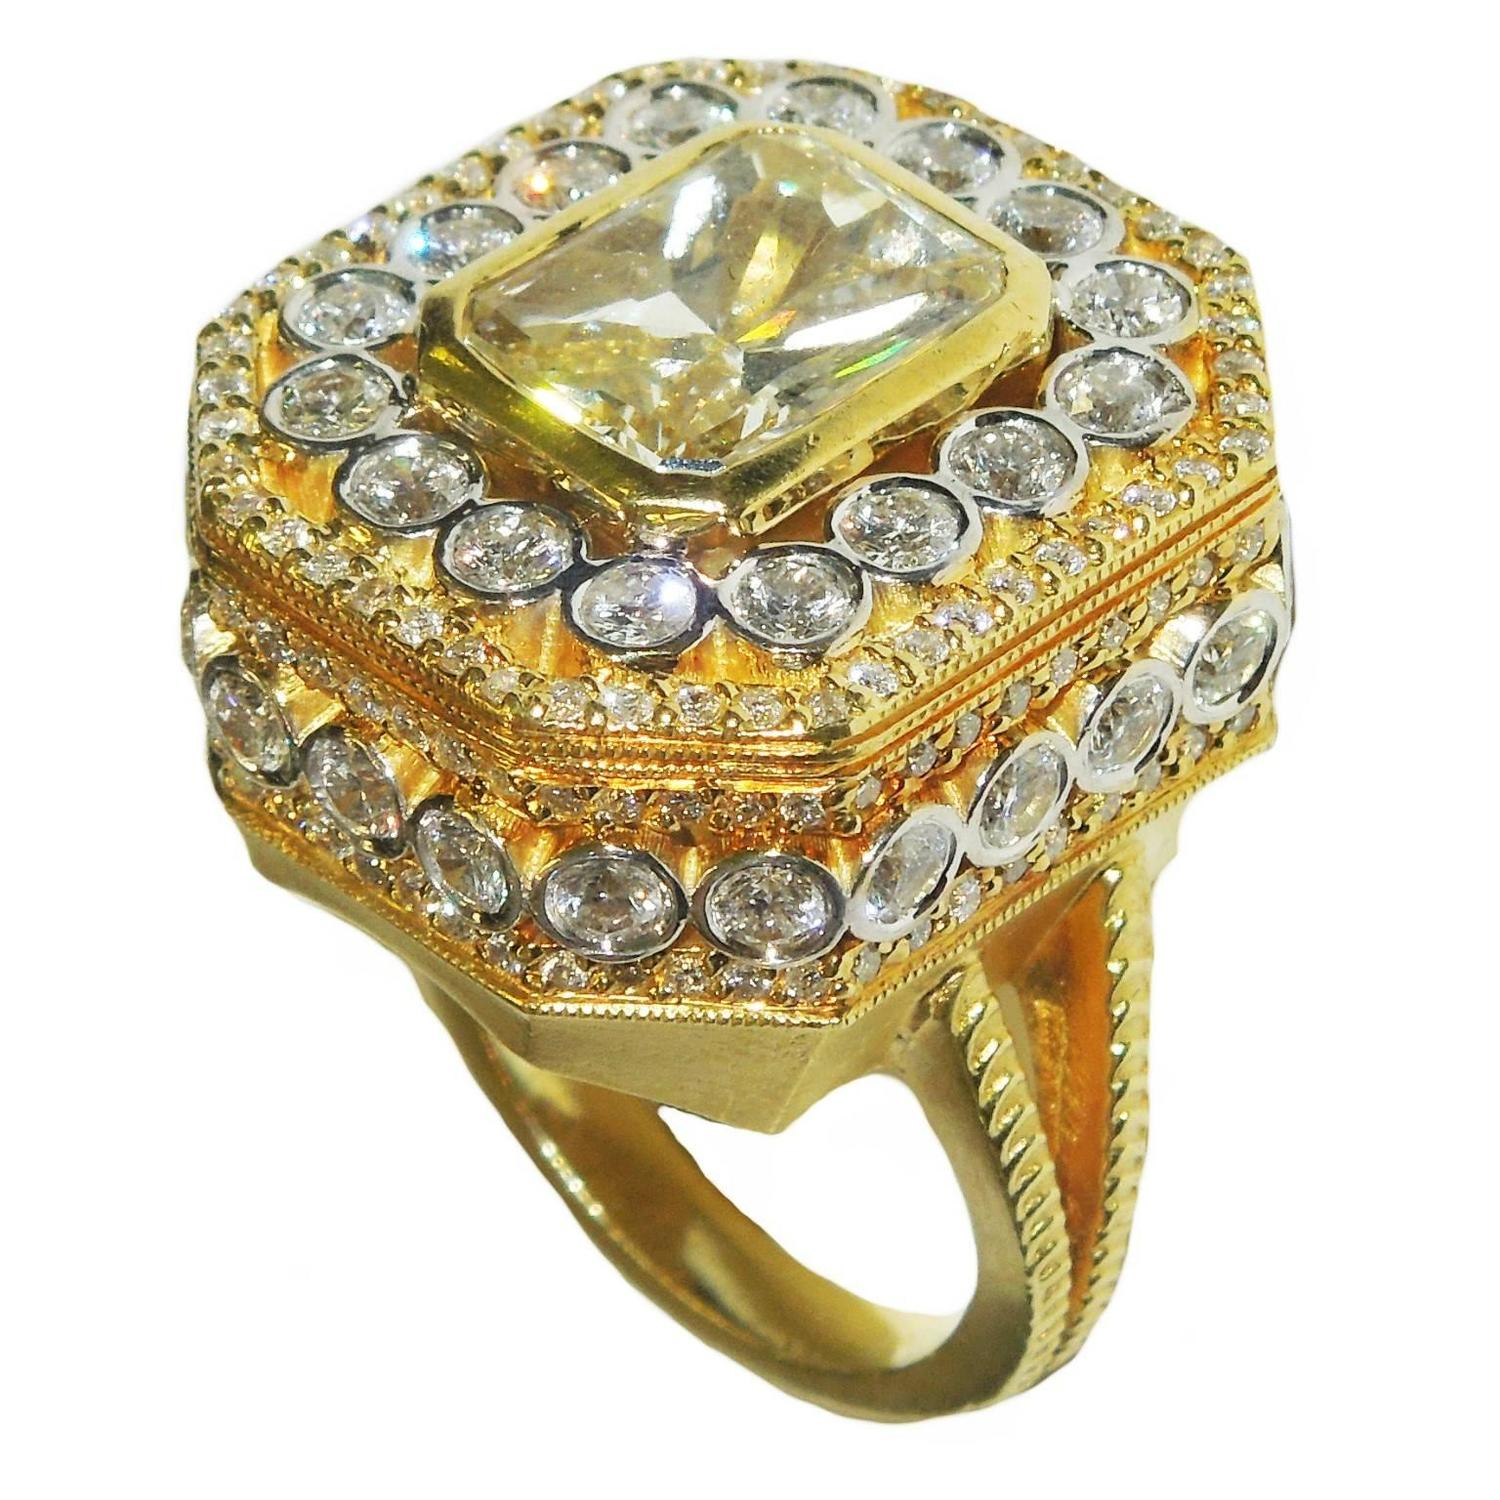 Stambolian 5 01 Carat Radiant Fancy Yellow Diamond Gold Ring For Sale at 1stdibs